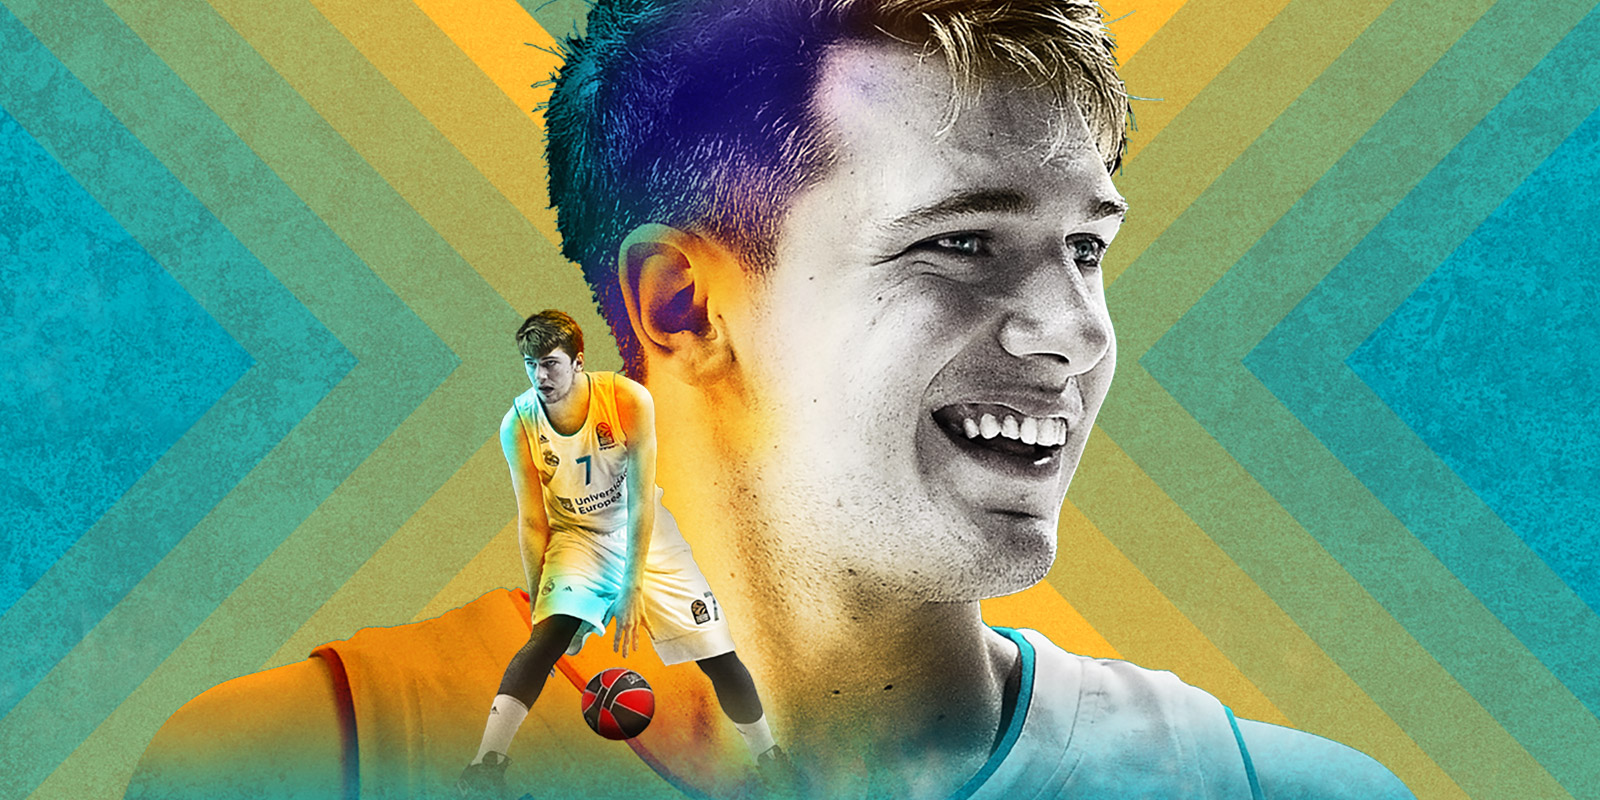 6853352b4 Will Luka Doncic be the next star NBA player from Europe